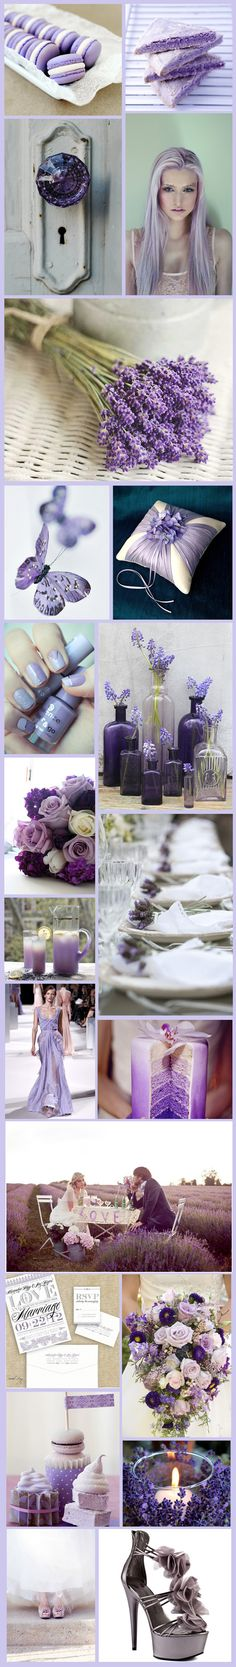 Lavender Love Inspiration Board. Loving the colours and the boquets. I don't like a lavender smell though...